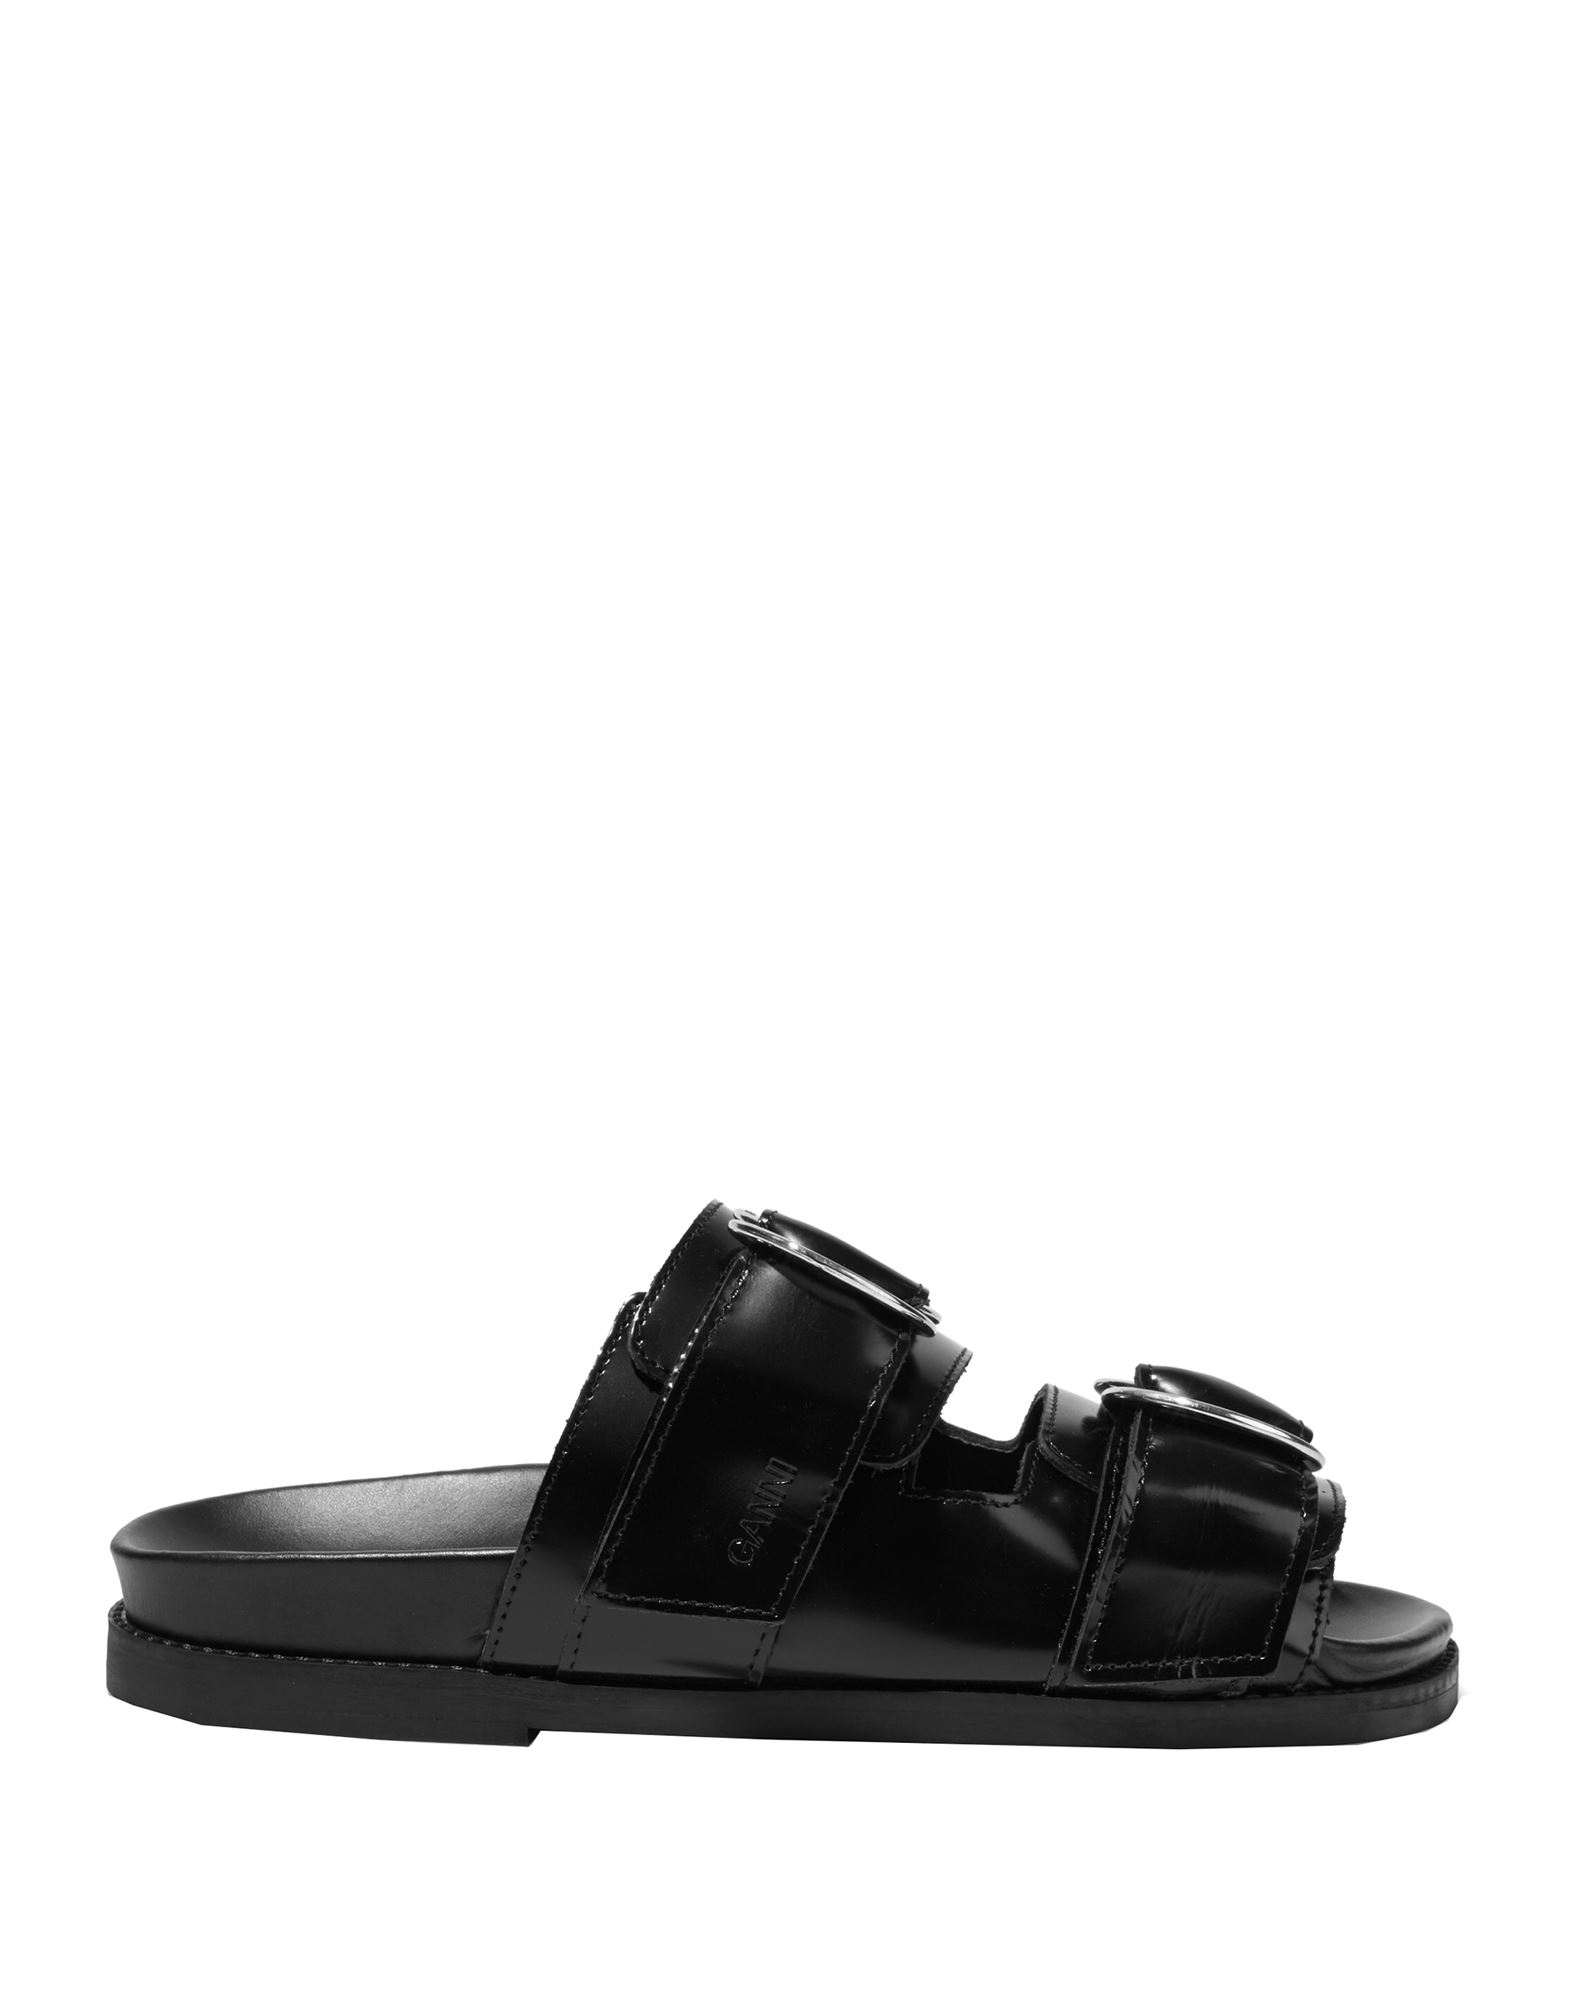 GANNI Sandals. polished leather, no appliqués, solid color, buckle fastening, round toeline, flat, leather lining, rubber sole, contains non-textile parts of animal origin, small sized. Soft Leather